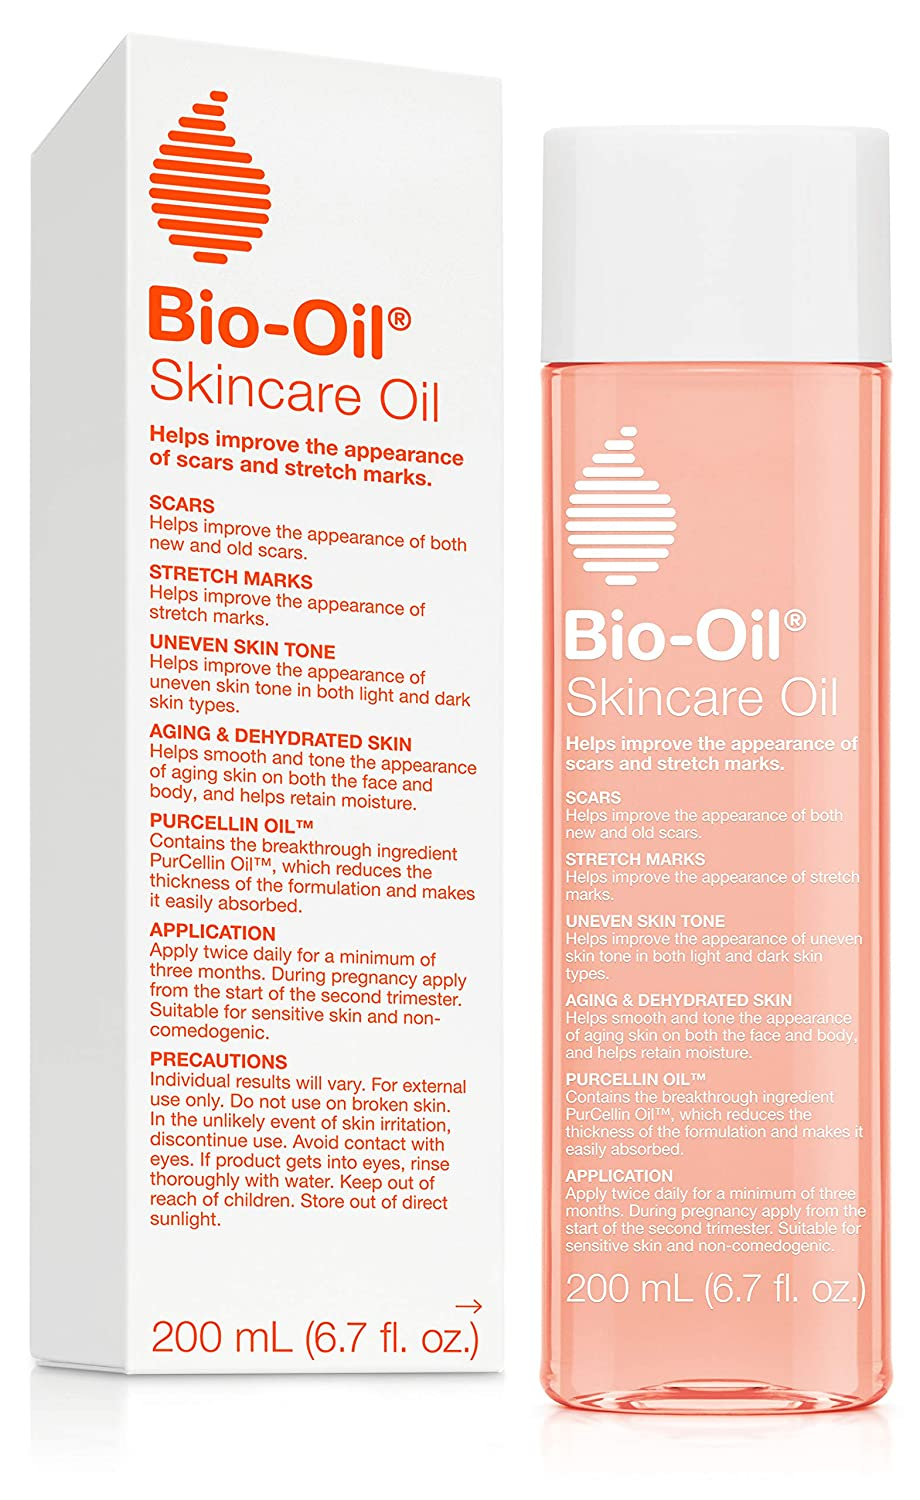 Bio-Oil Skincare Oil, 6.7 Ounce, Body Oil for Scars and Stretch Marks, Hydrates Skin, Non-Greasy, Dermatologist Recommended, Non-Comedogenic, For All Skin Types, with Vitamin A, E: Beauty